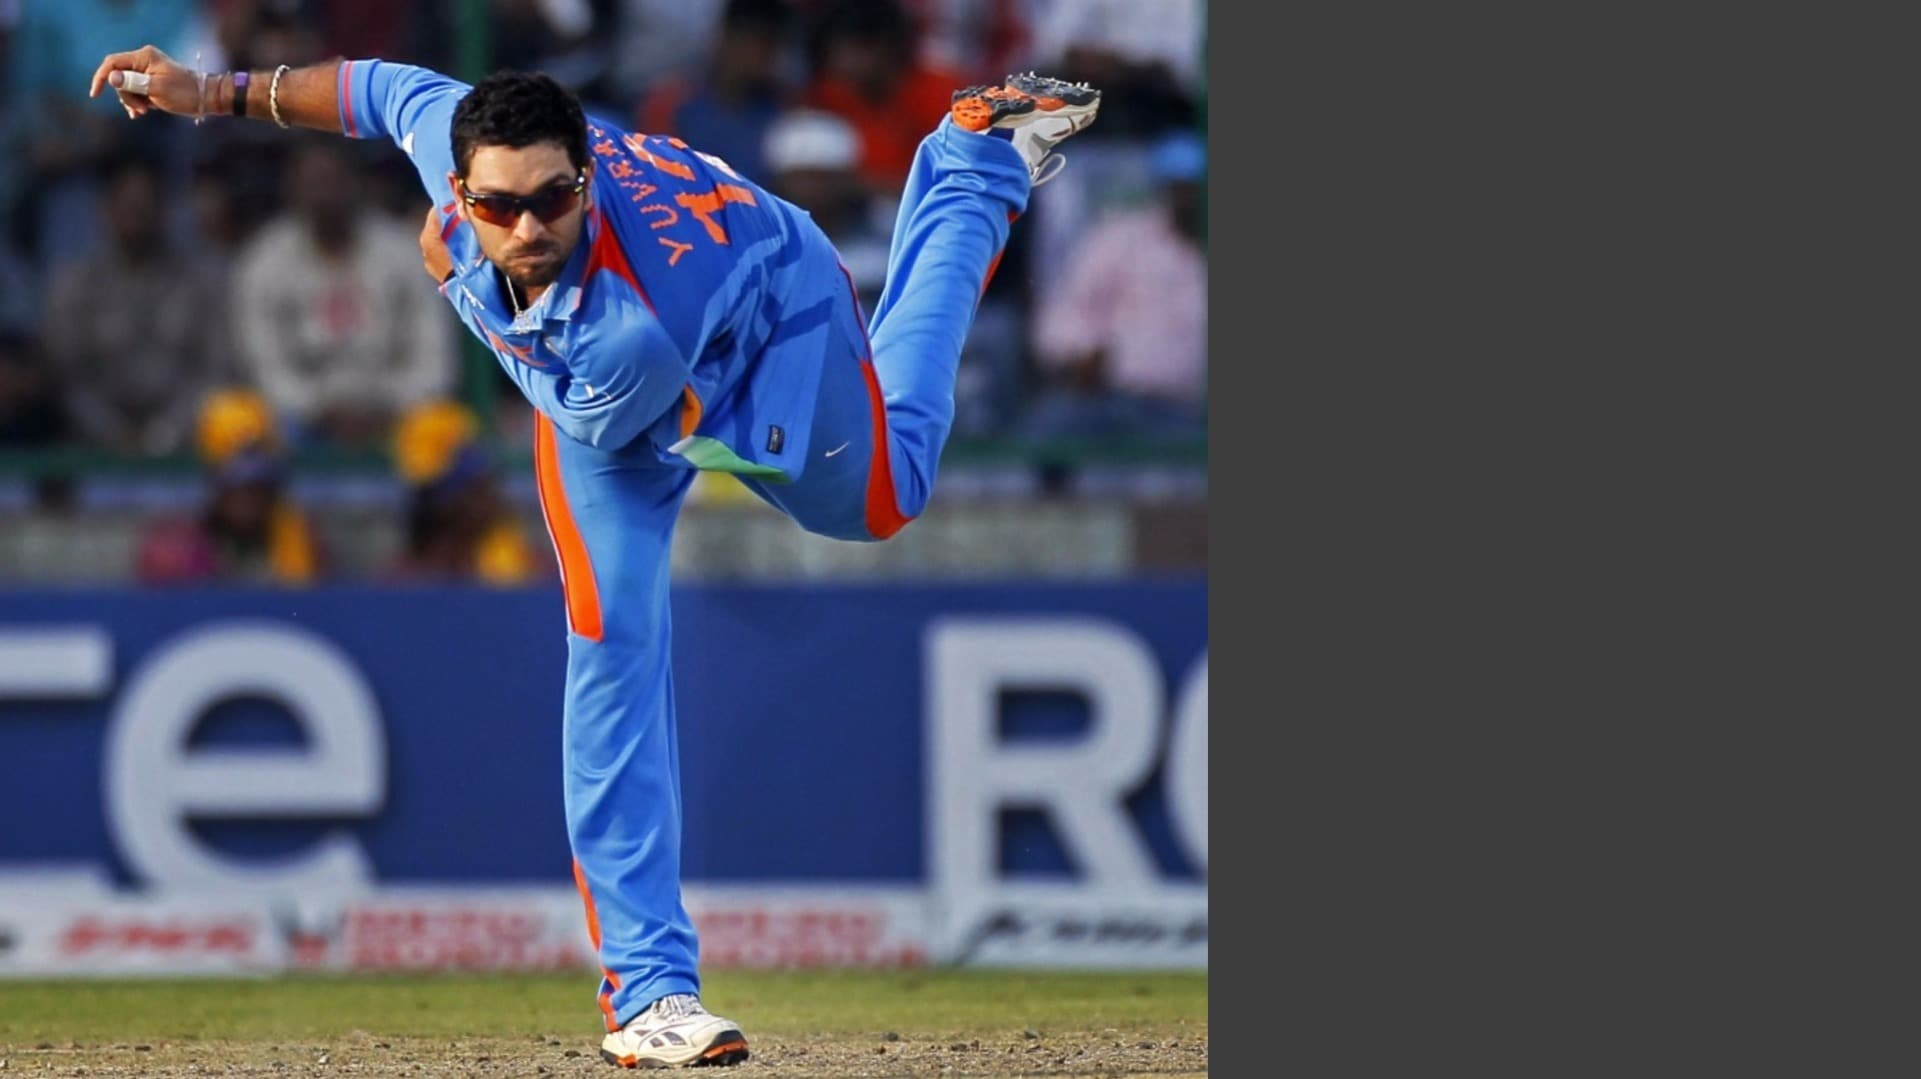 Yuvraj Singh dropped, MS Dhoni no automatic choice